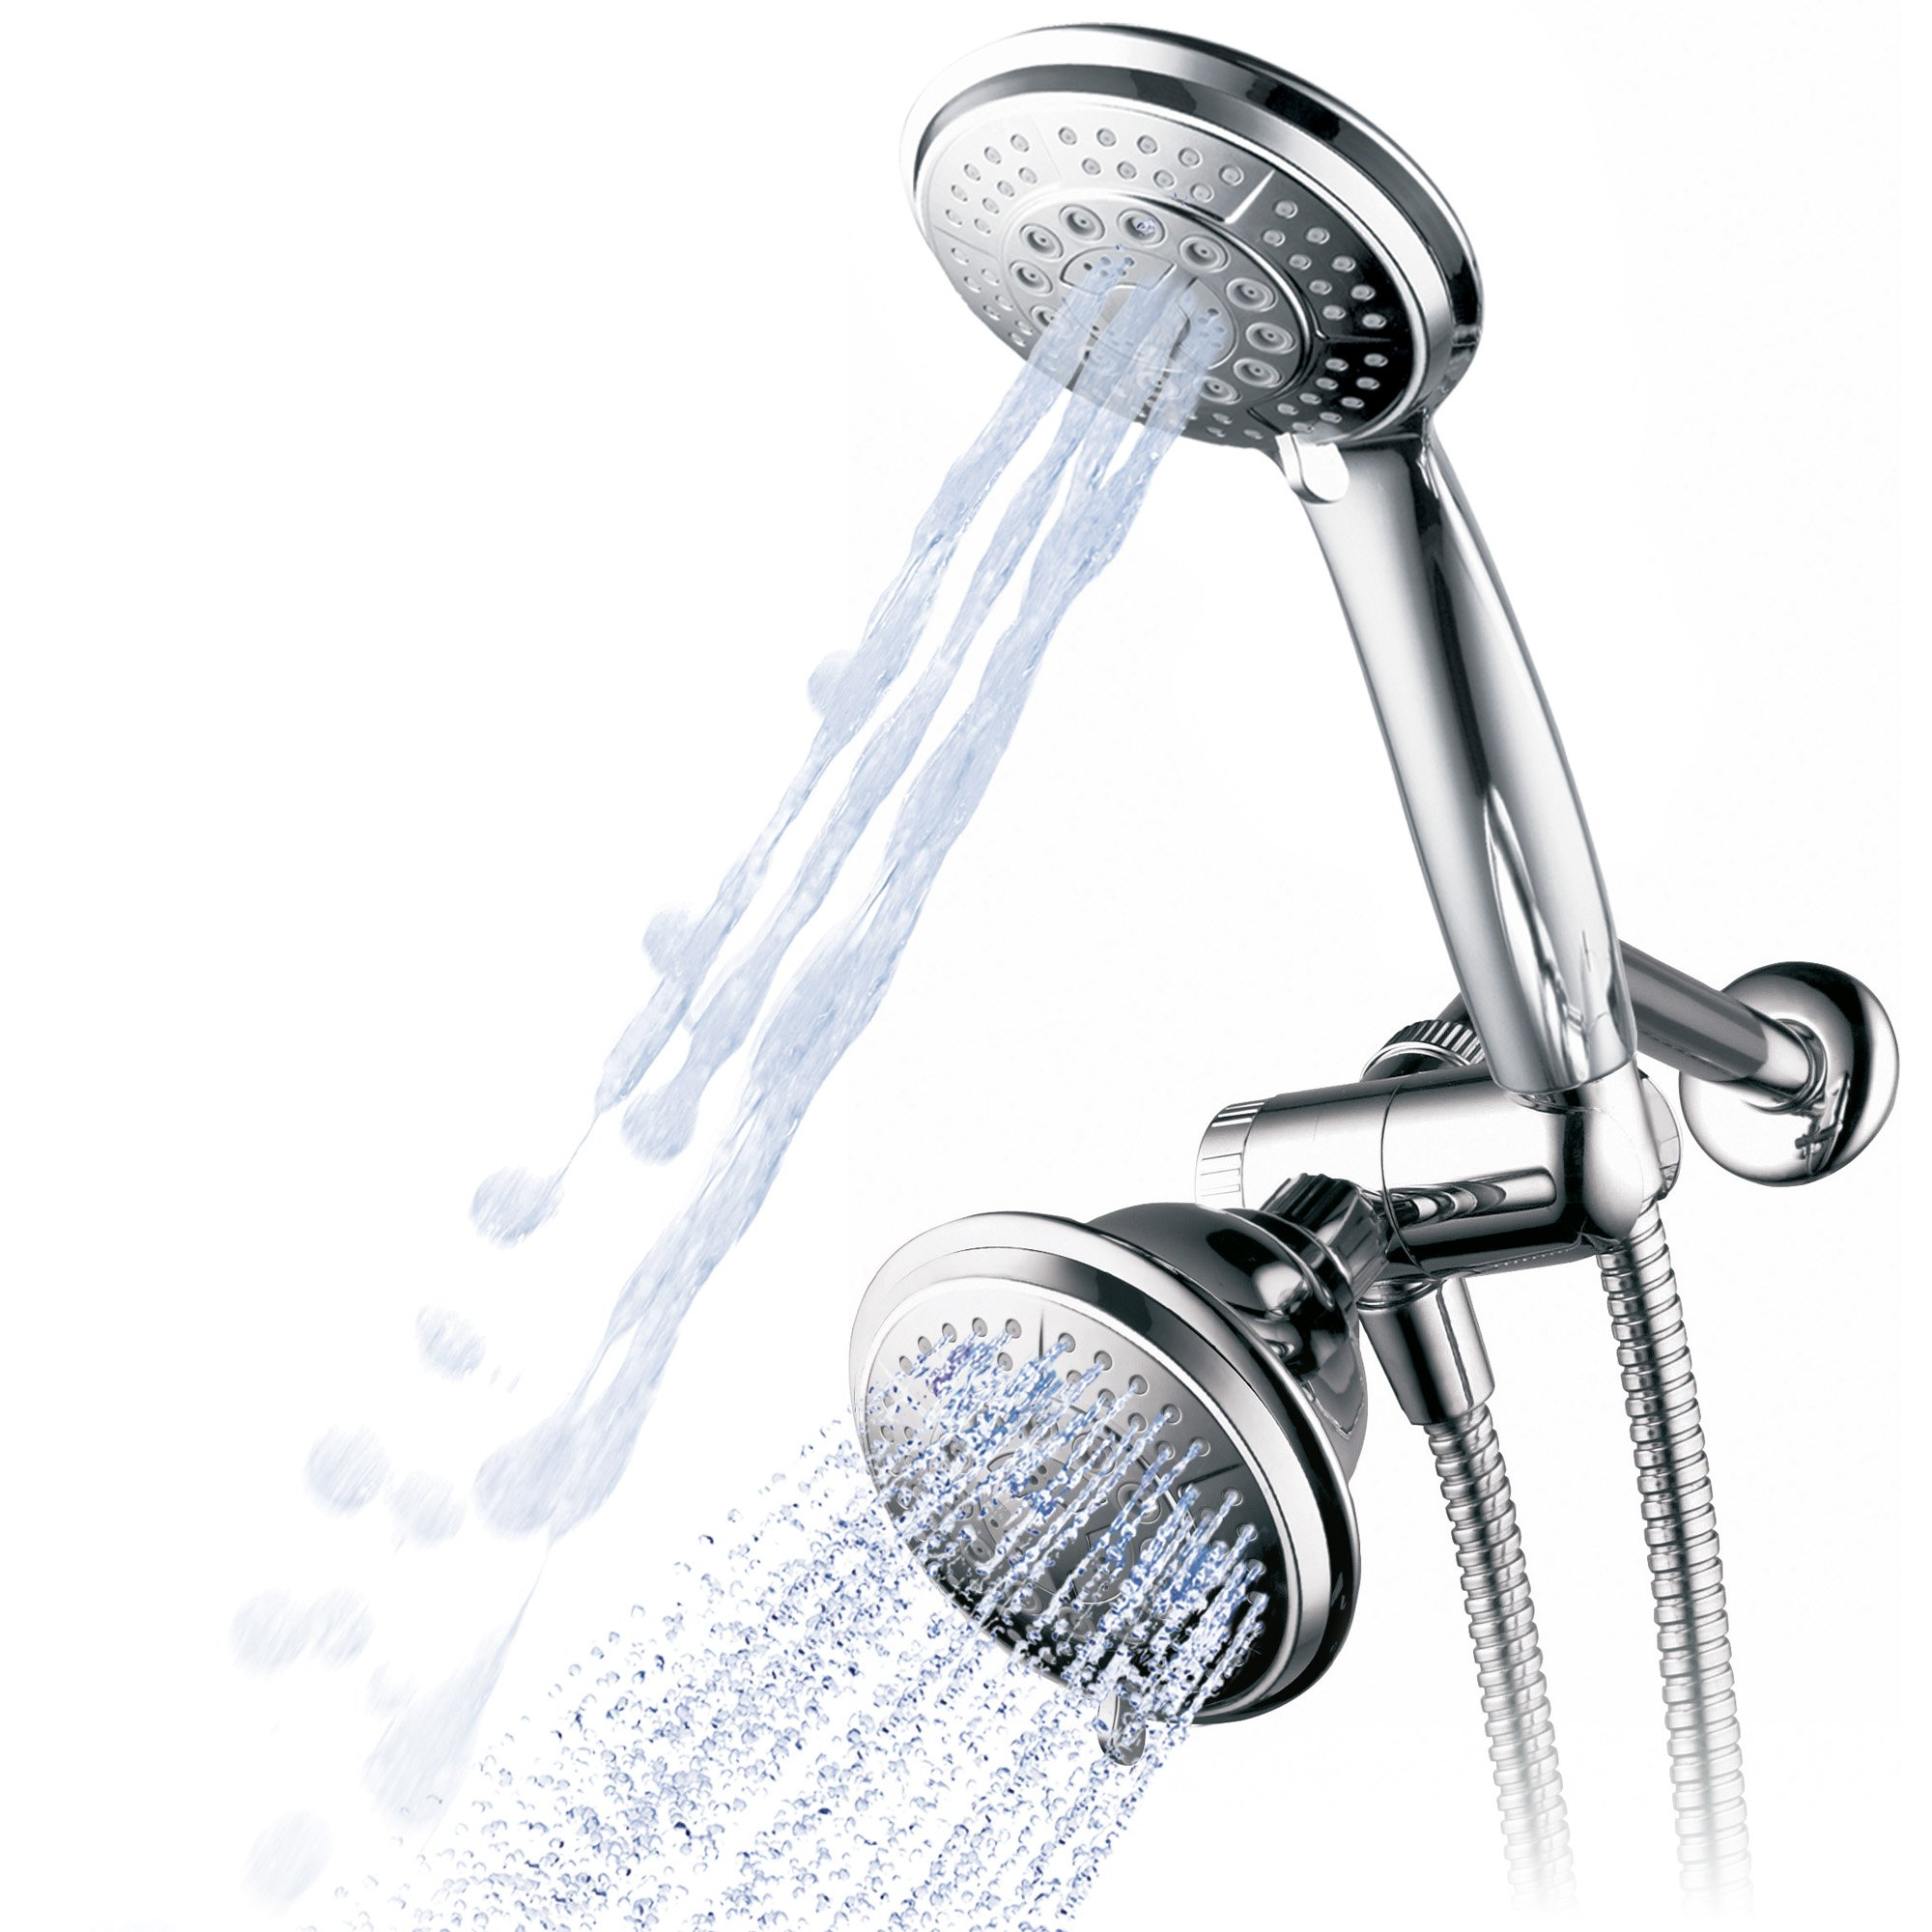 Hydroluxe Full-Chrome 24 Function Ultra-Luxury 3-way 2 in 1 Shower-Head/Handheld-Shower Combo by Hydroluxe